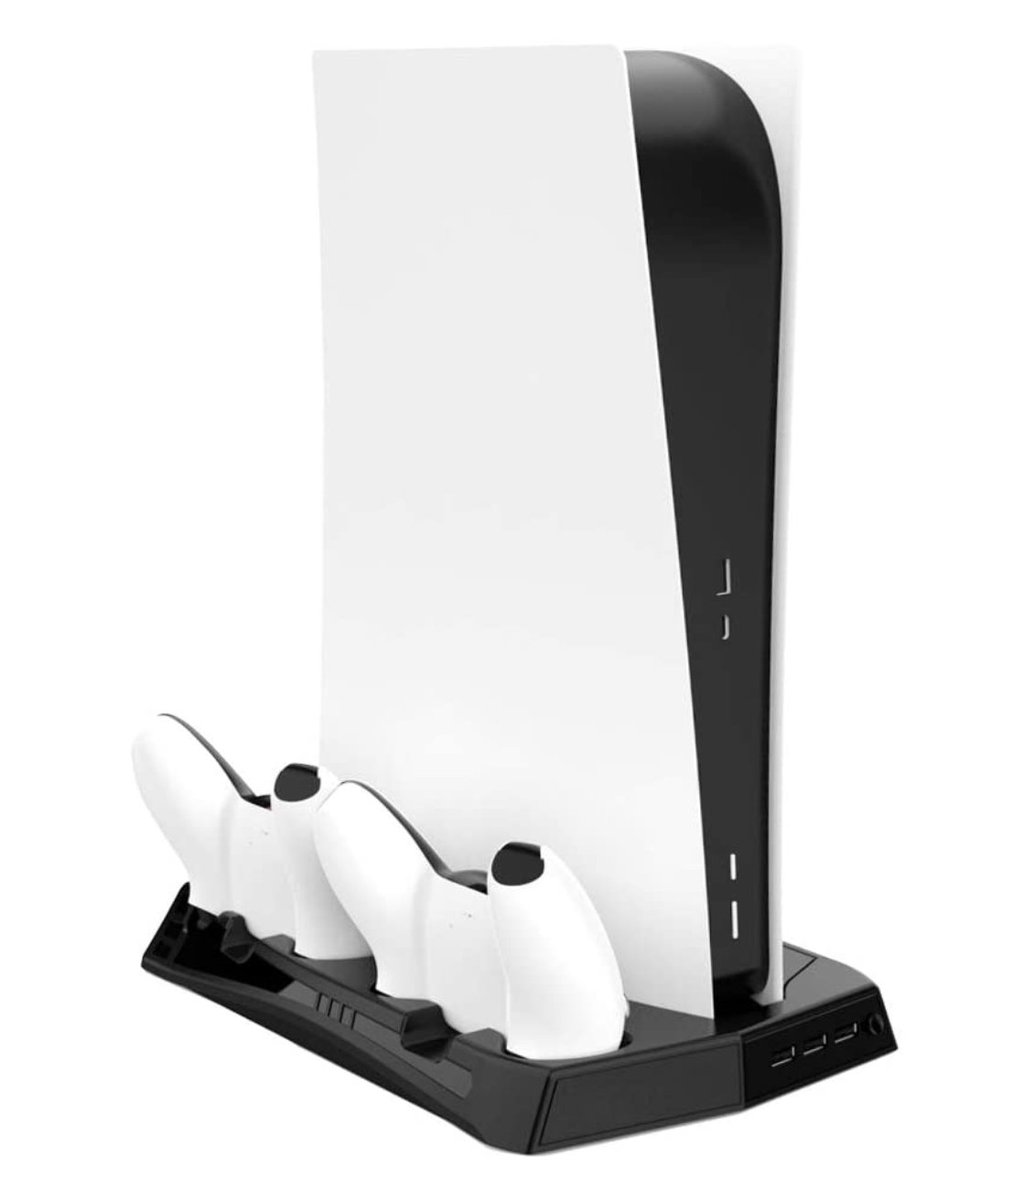 PS5 Vertical Stand by Connyam $18.99 Amazon